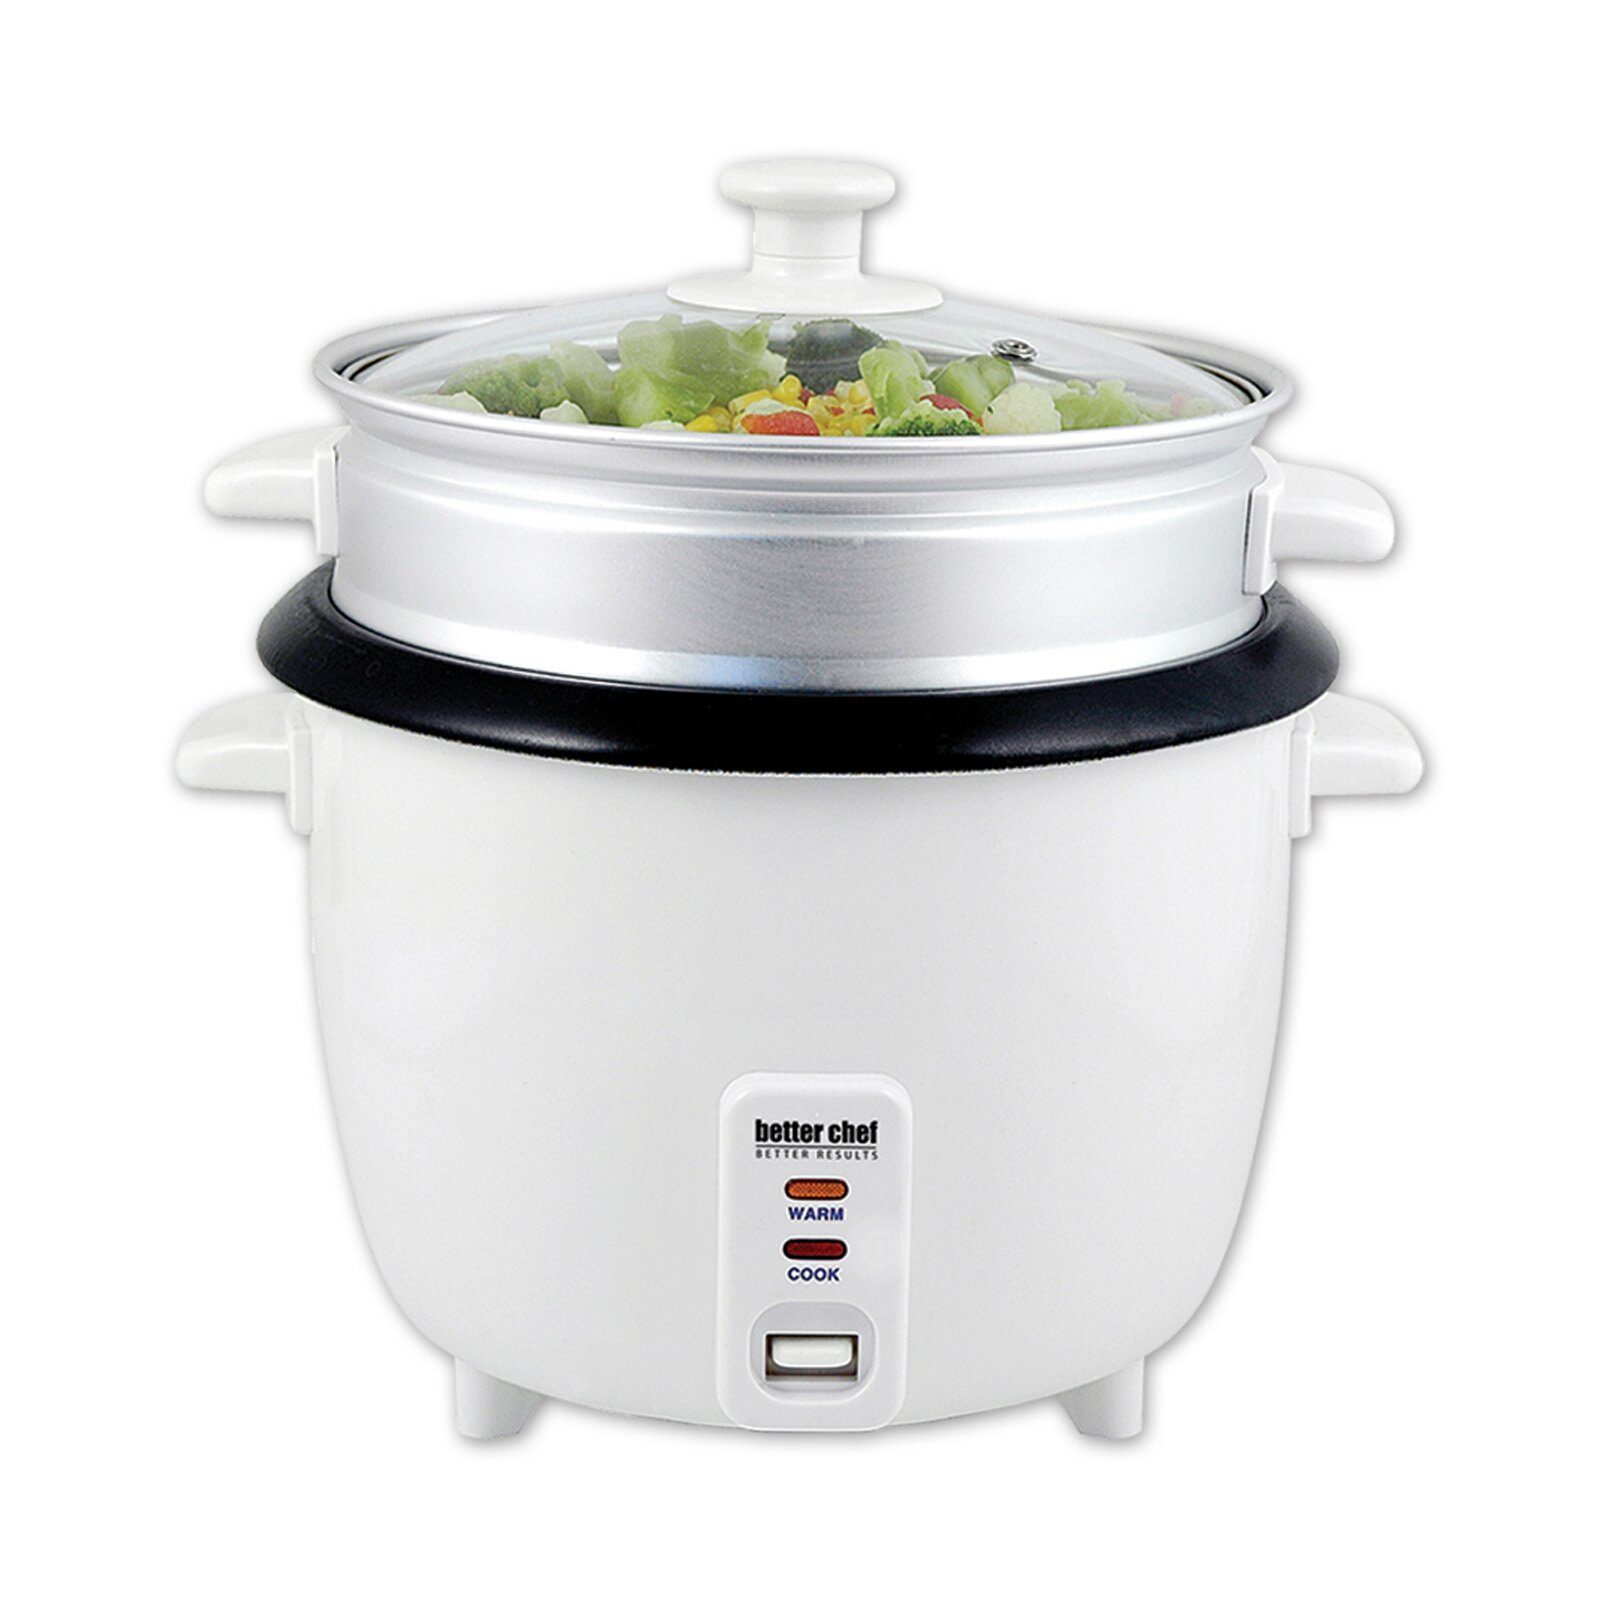 Kitchen Living Food Steamer: Better Chef Rice Cooker With Food Steamer & Reviews